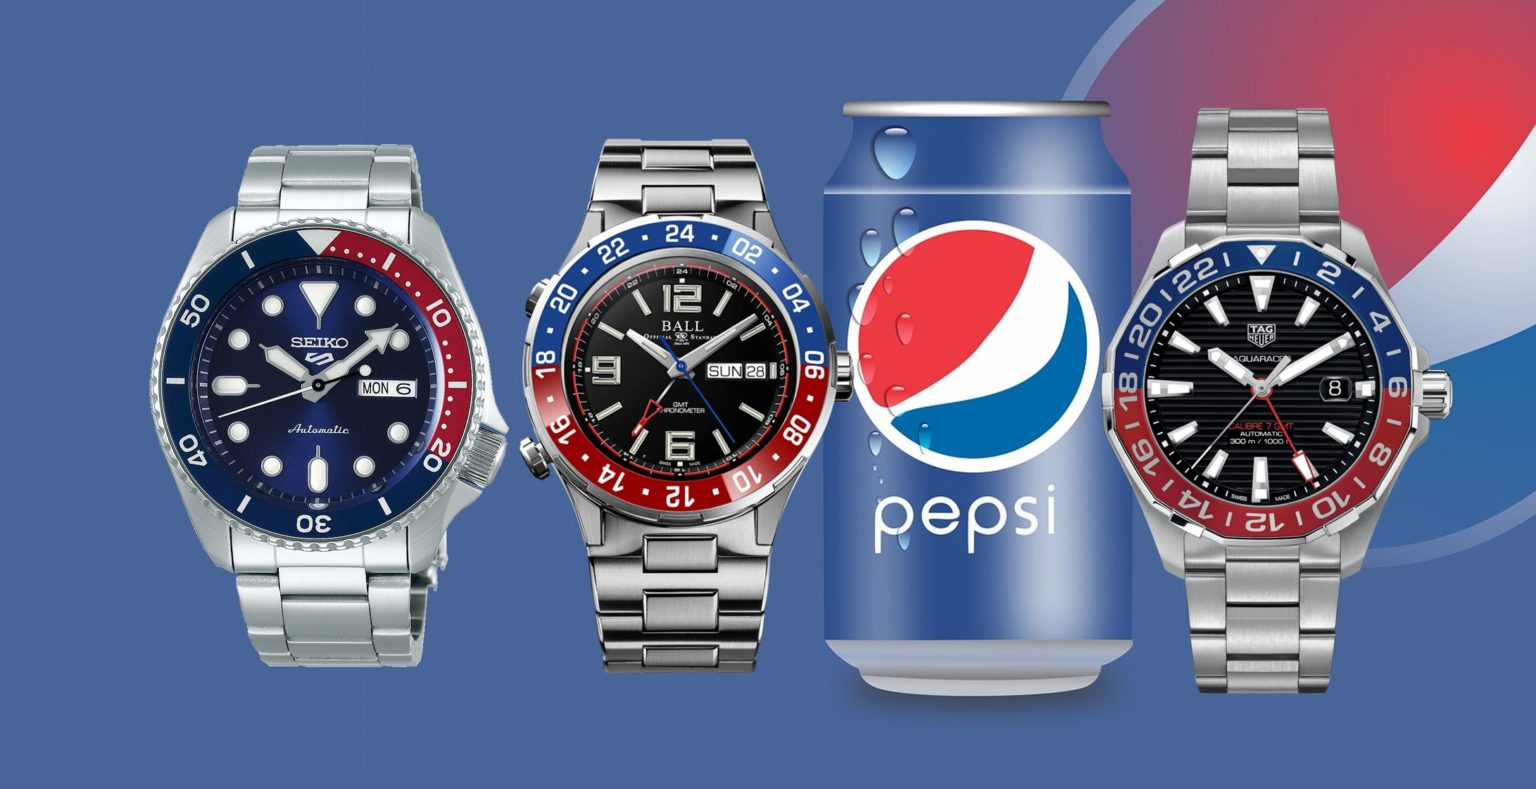 Rolex-Pepsi-Alternativen-Hommagen